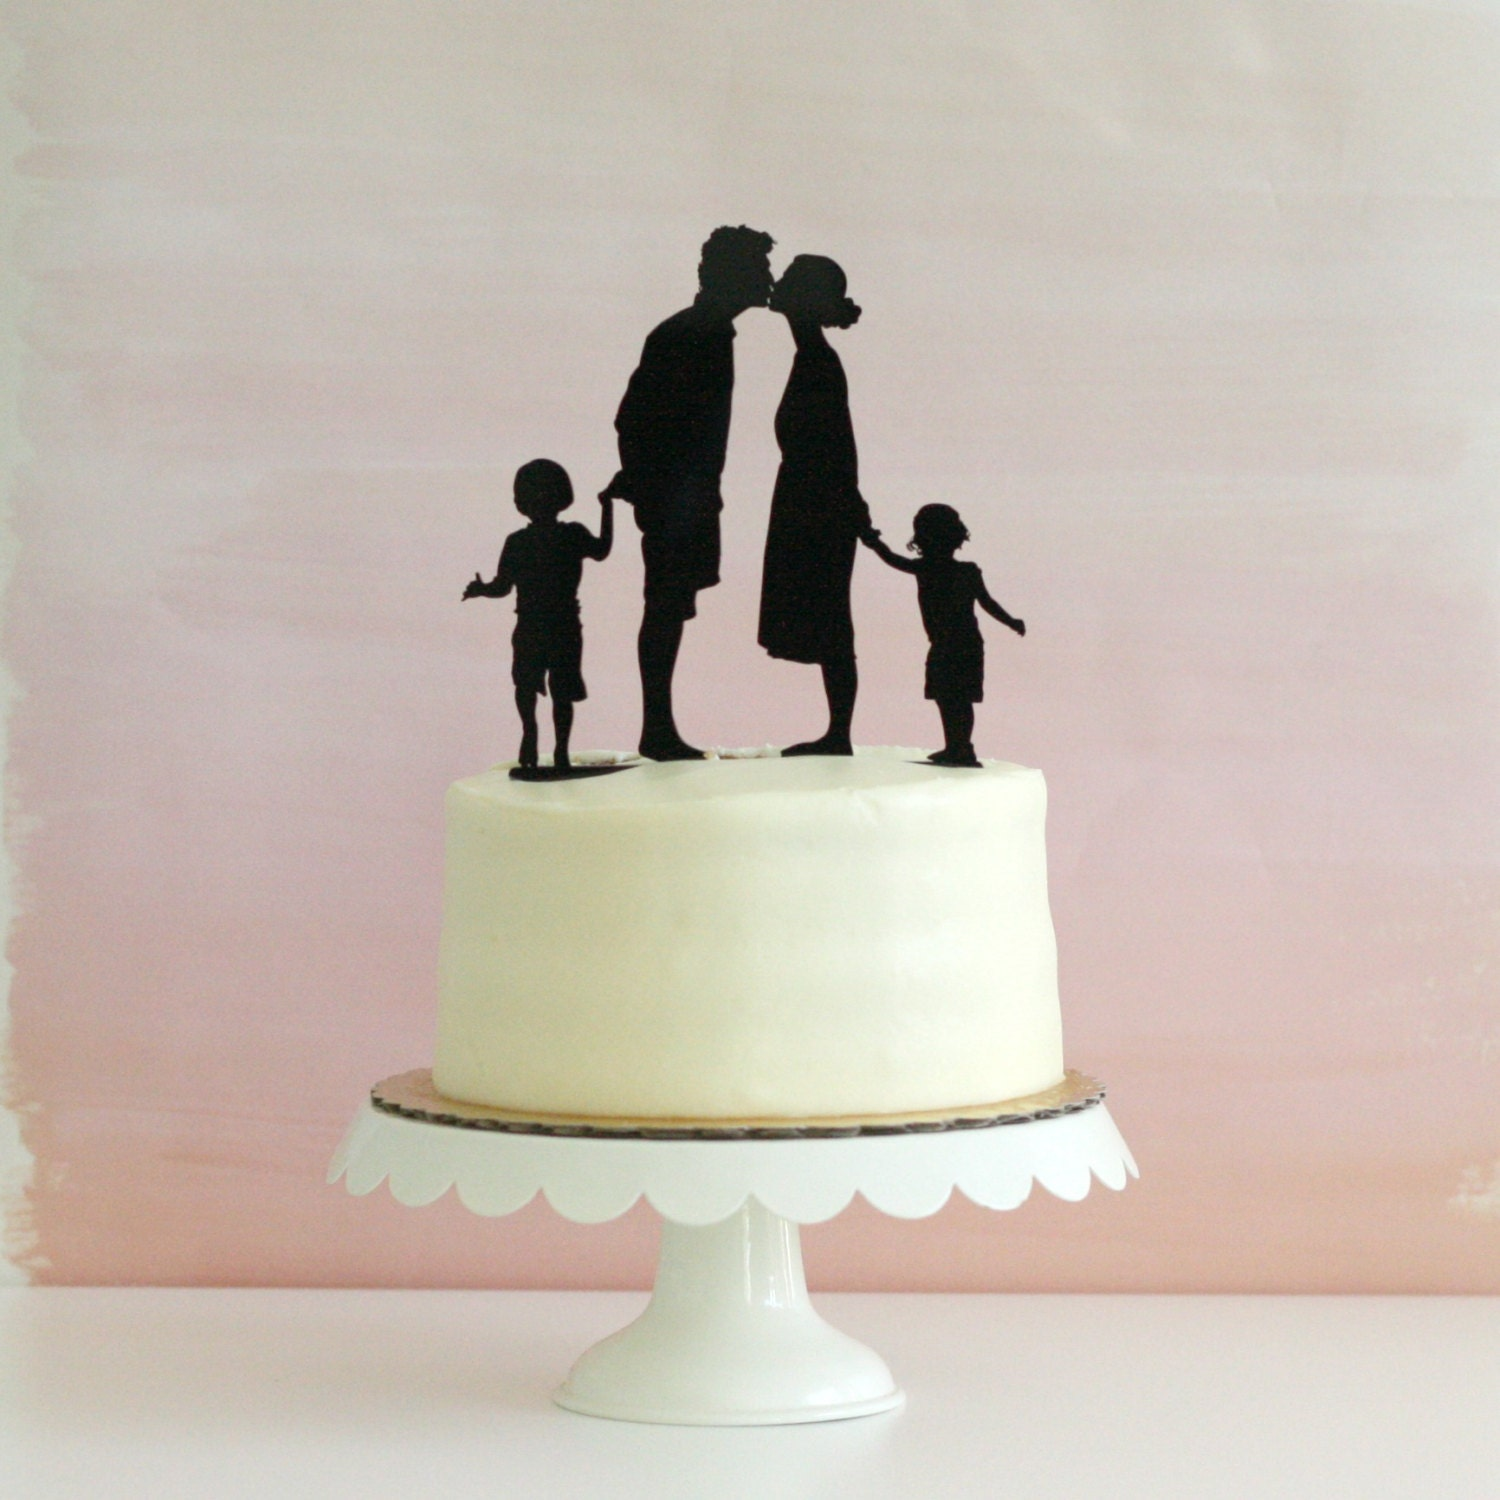 Custom Family Silhouette Wedding Cake Topper Personalized